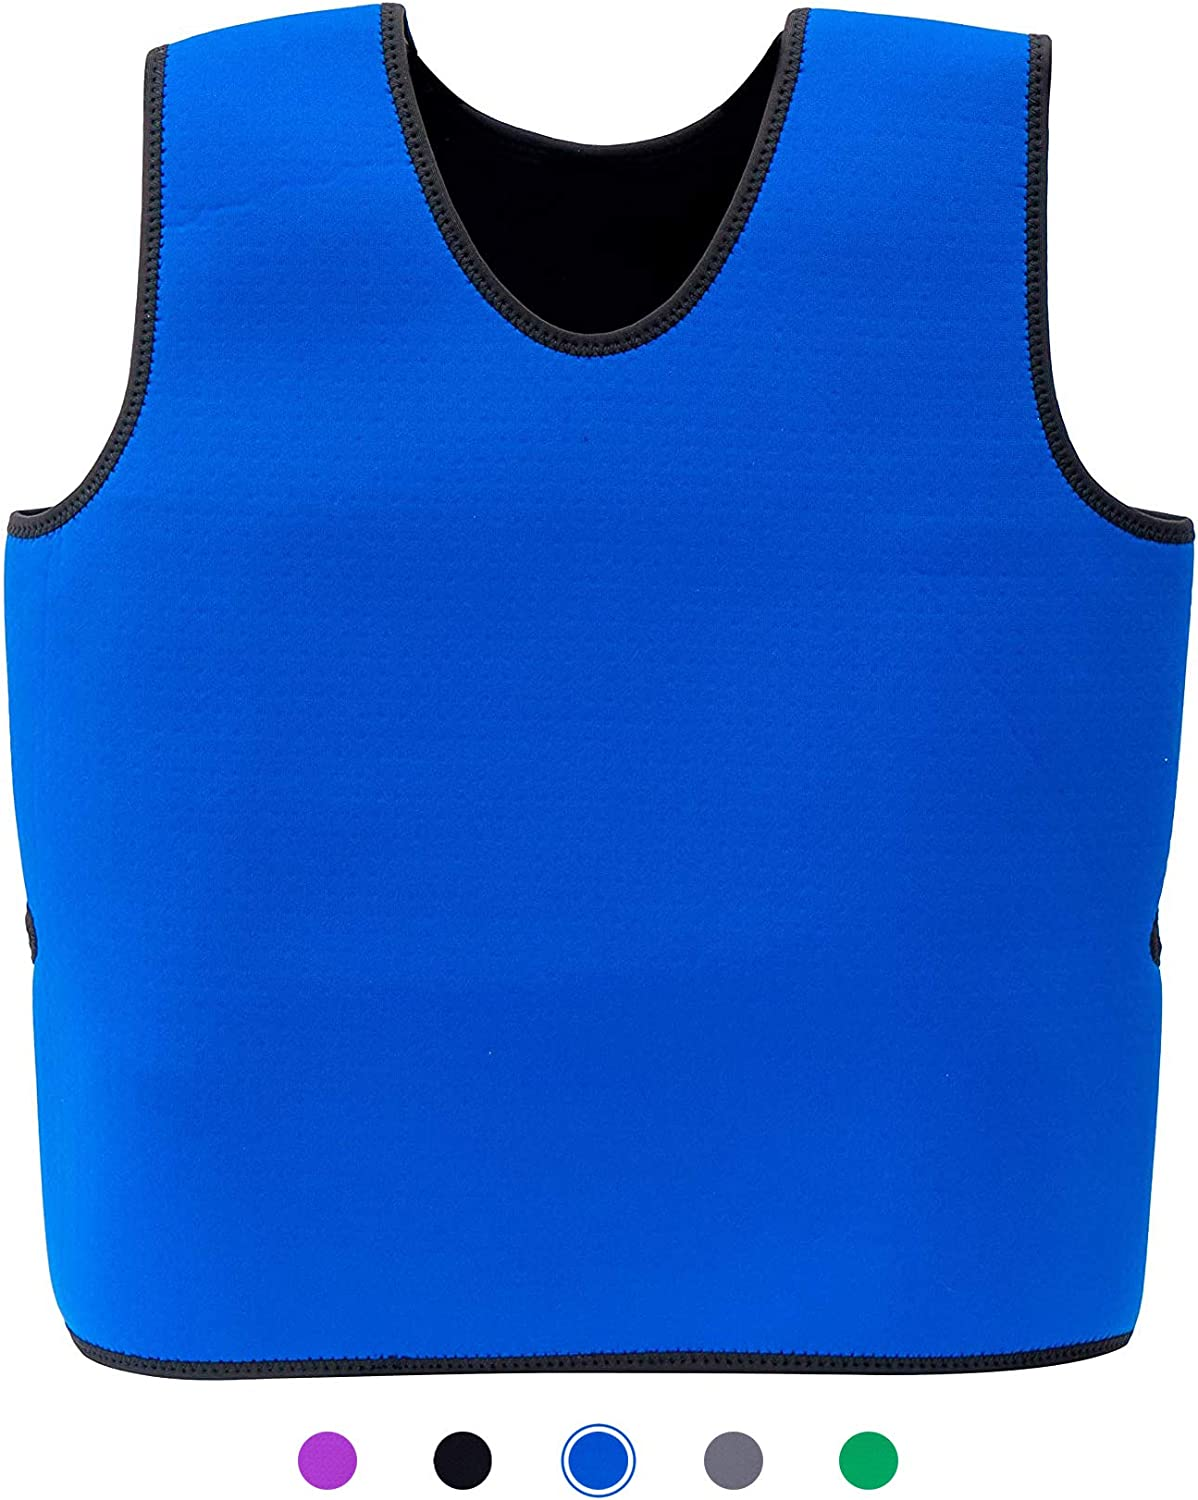 Special Supplies Sensory Compression Vest Deep Pressure Comfort for Autism, Hyperactivity, Mood Processing Disorders, Breathable, Form-Fitting, Kids and Adult (Blue, XX-Small 12x20 inches)